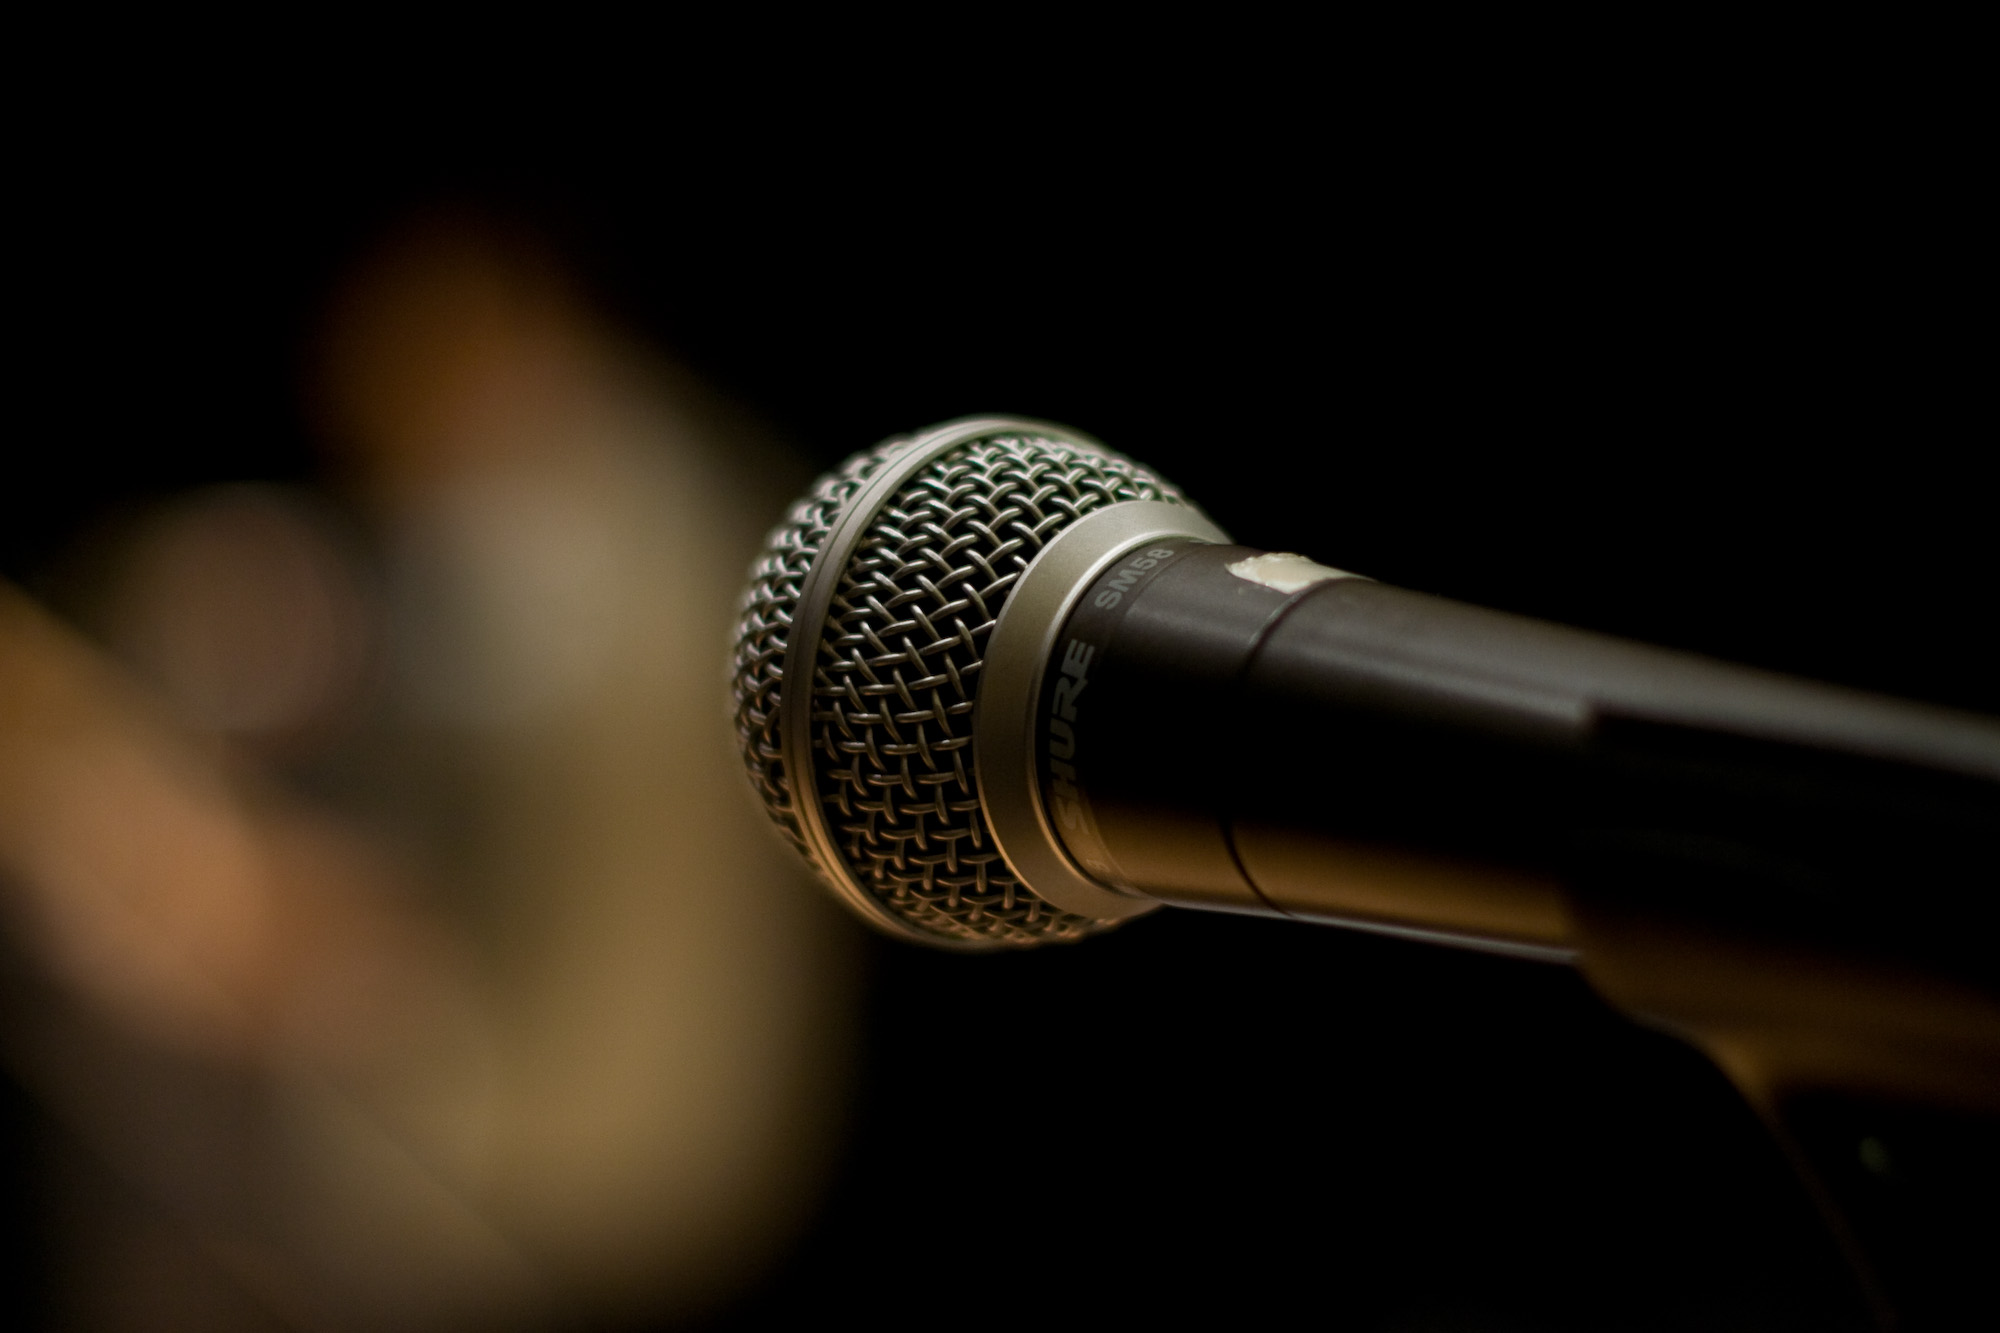 Microphone (Not unlike the one used by our DJs) by Alex Indigo via Flickr (CC BY SA, 2.0 License)